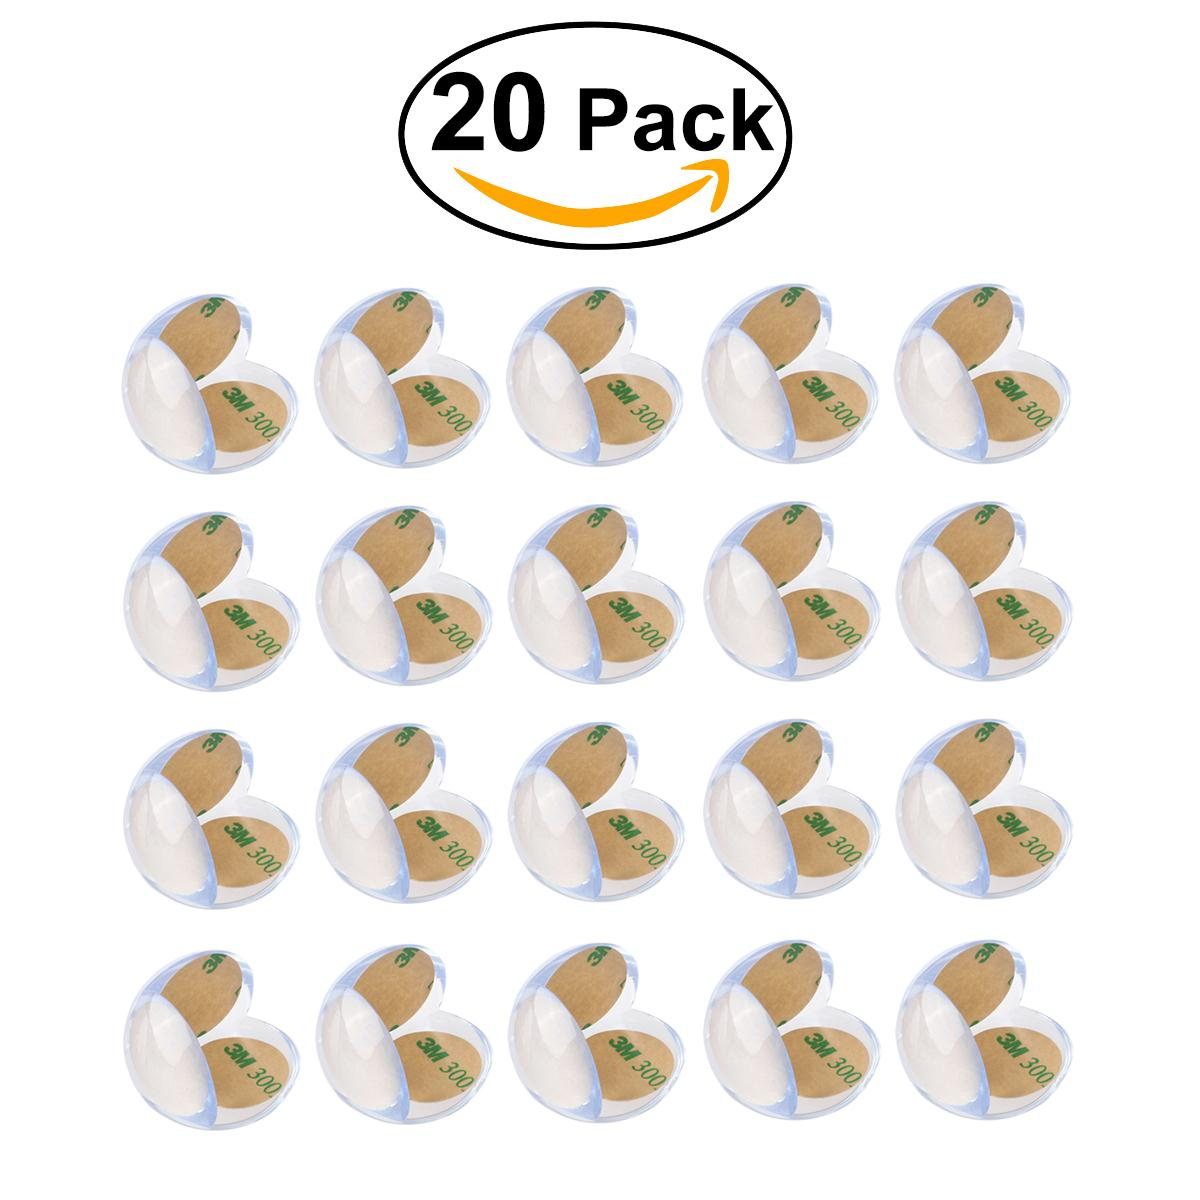 20pcs Baby Child Kids Safety Soft Silicone Ball Shape Table Corner  Anti Collision Cushions Guards